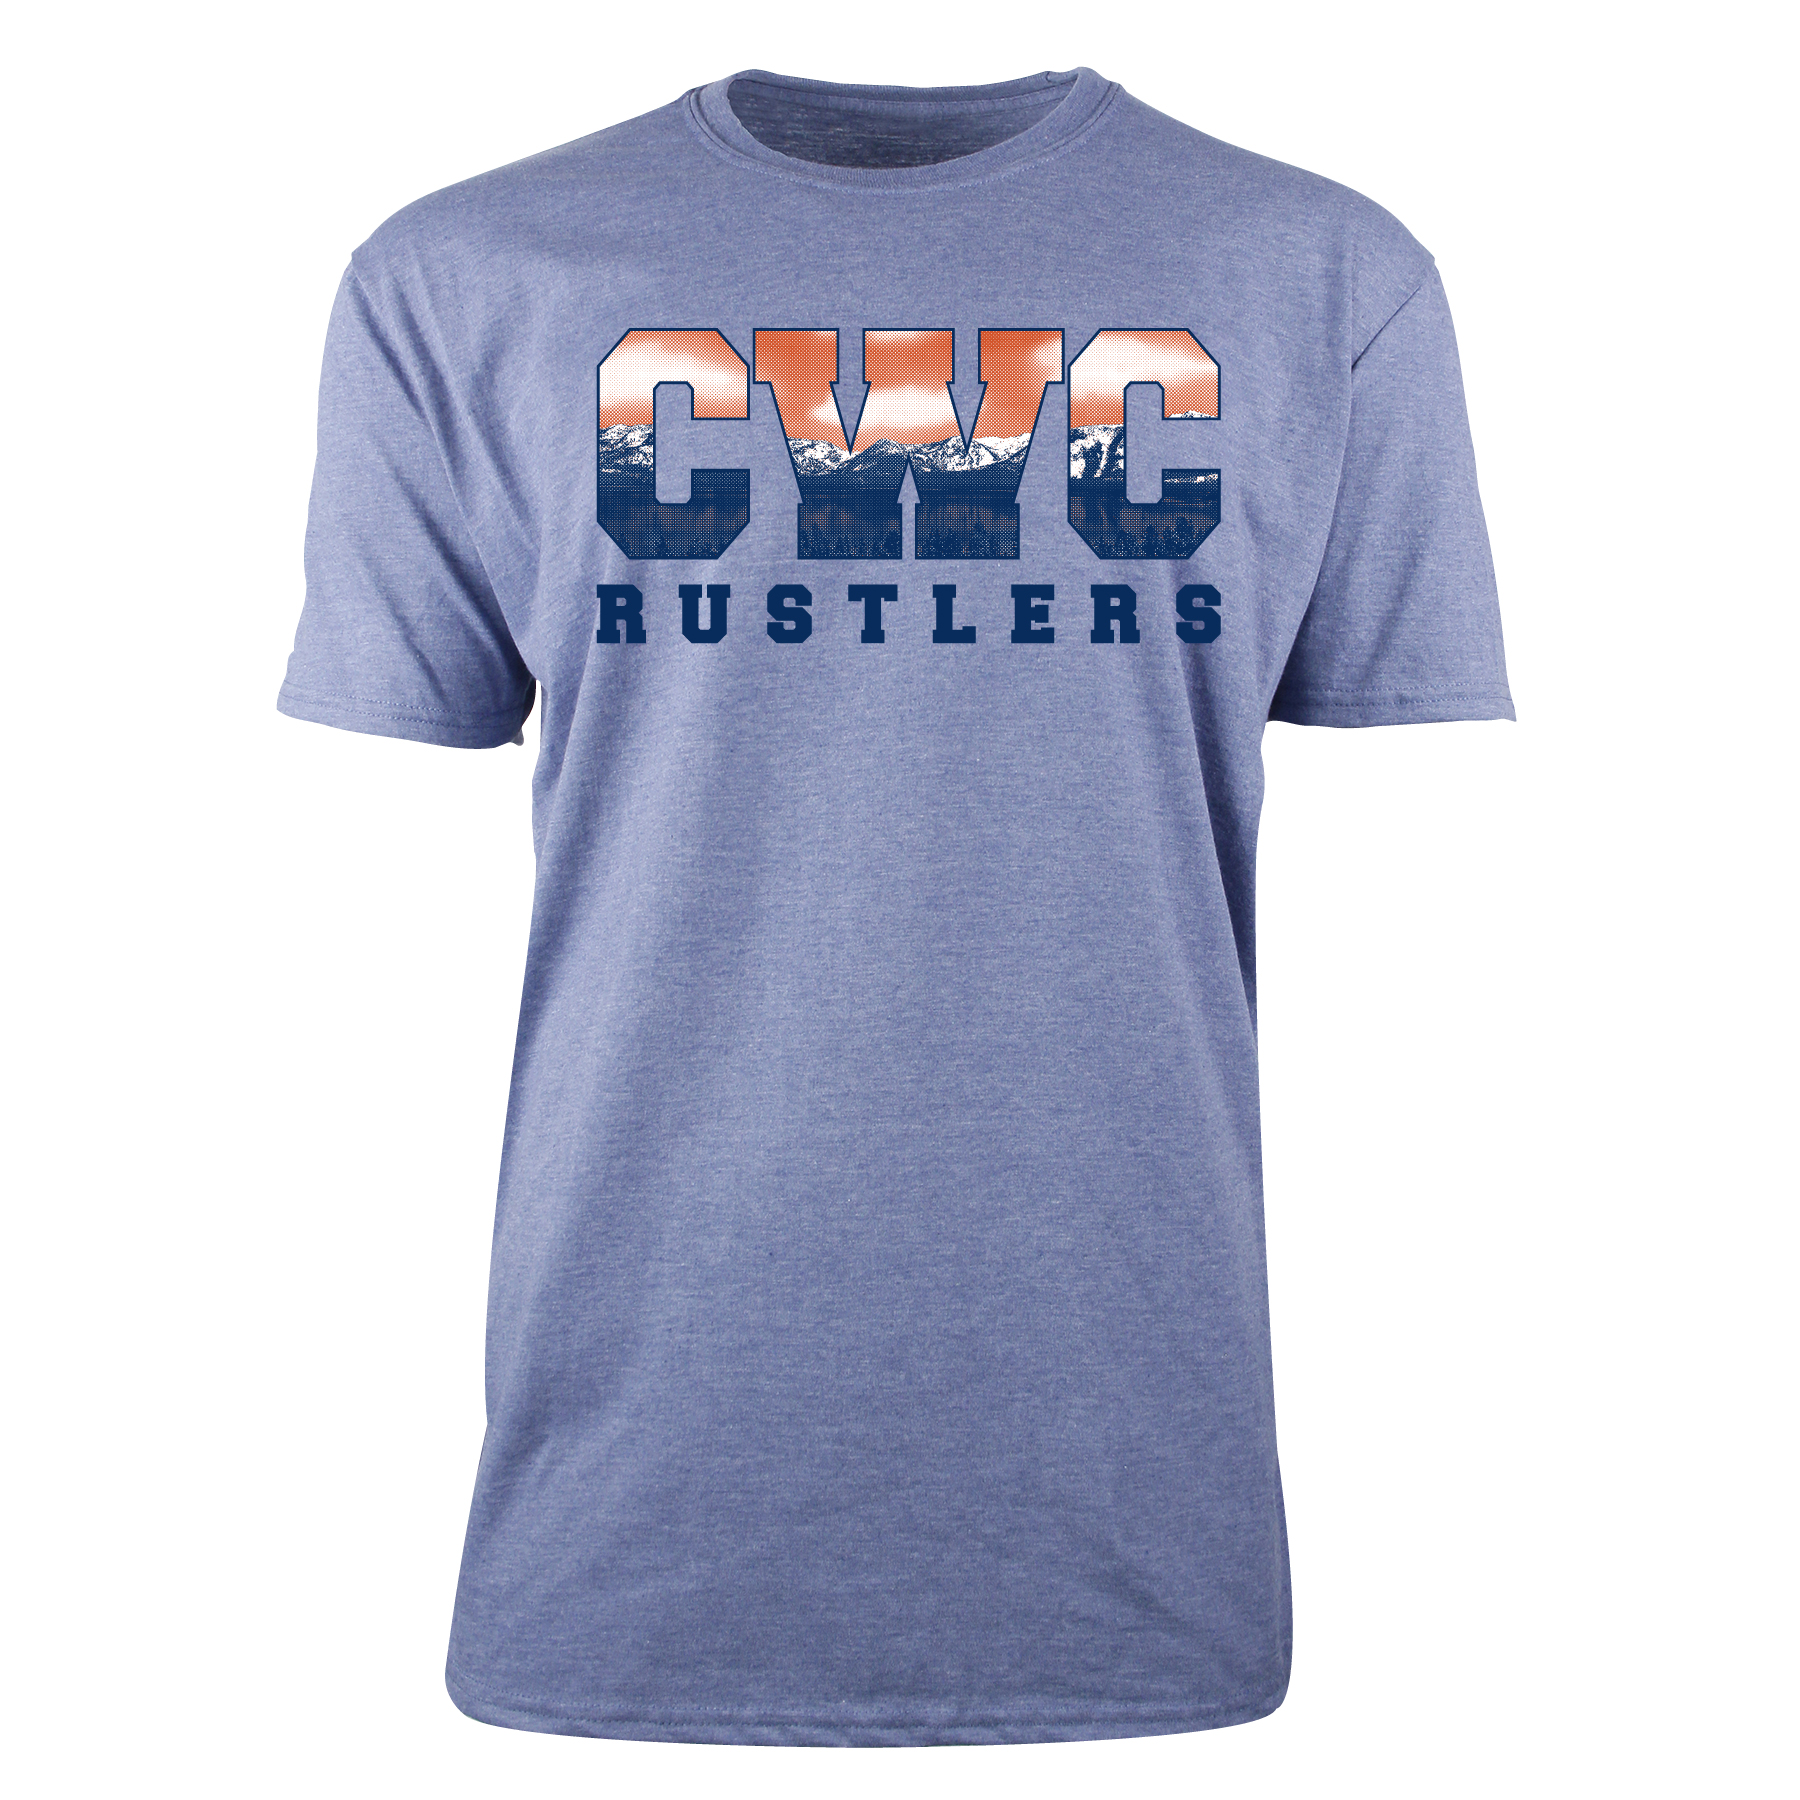 Mountain Print CWC Rustlers T-Shirt